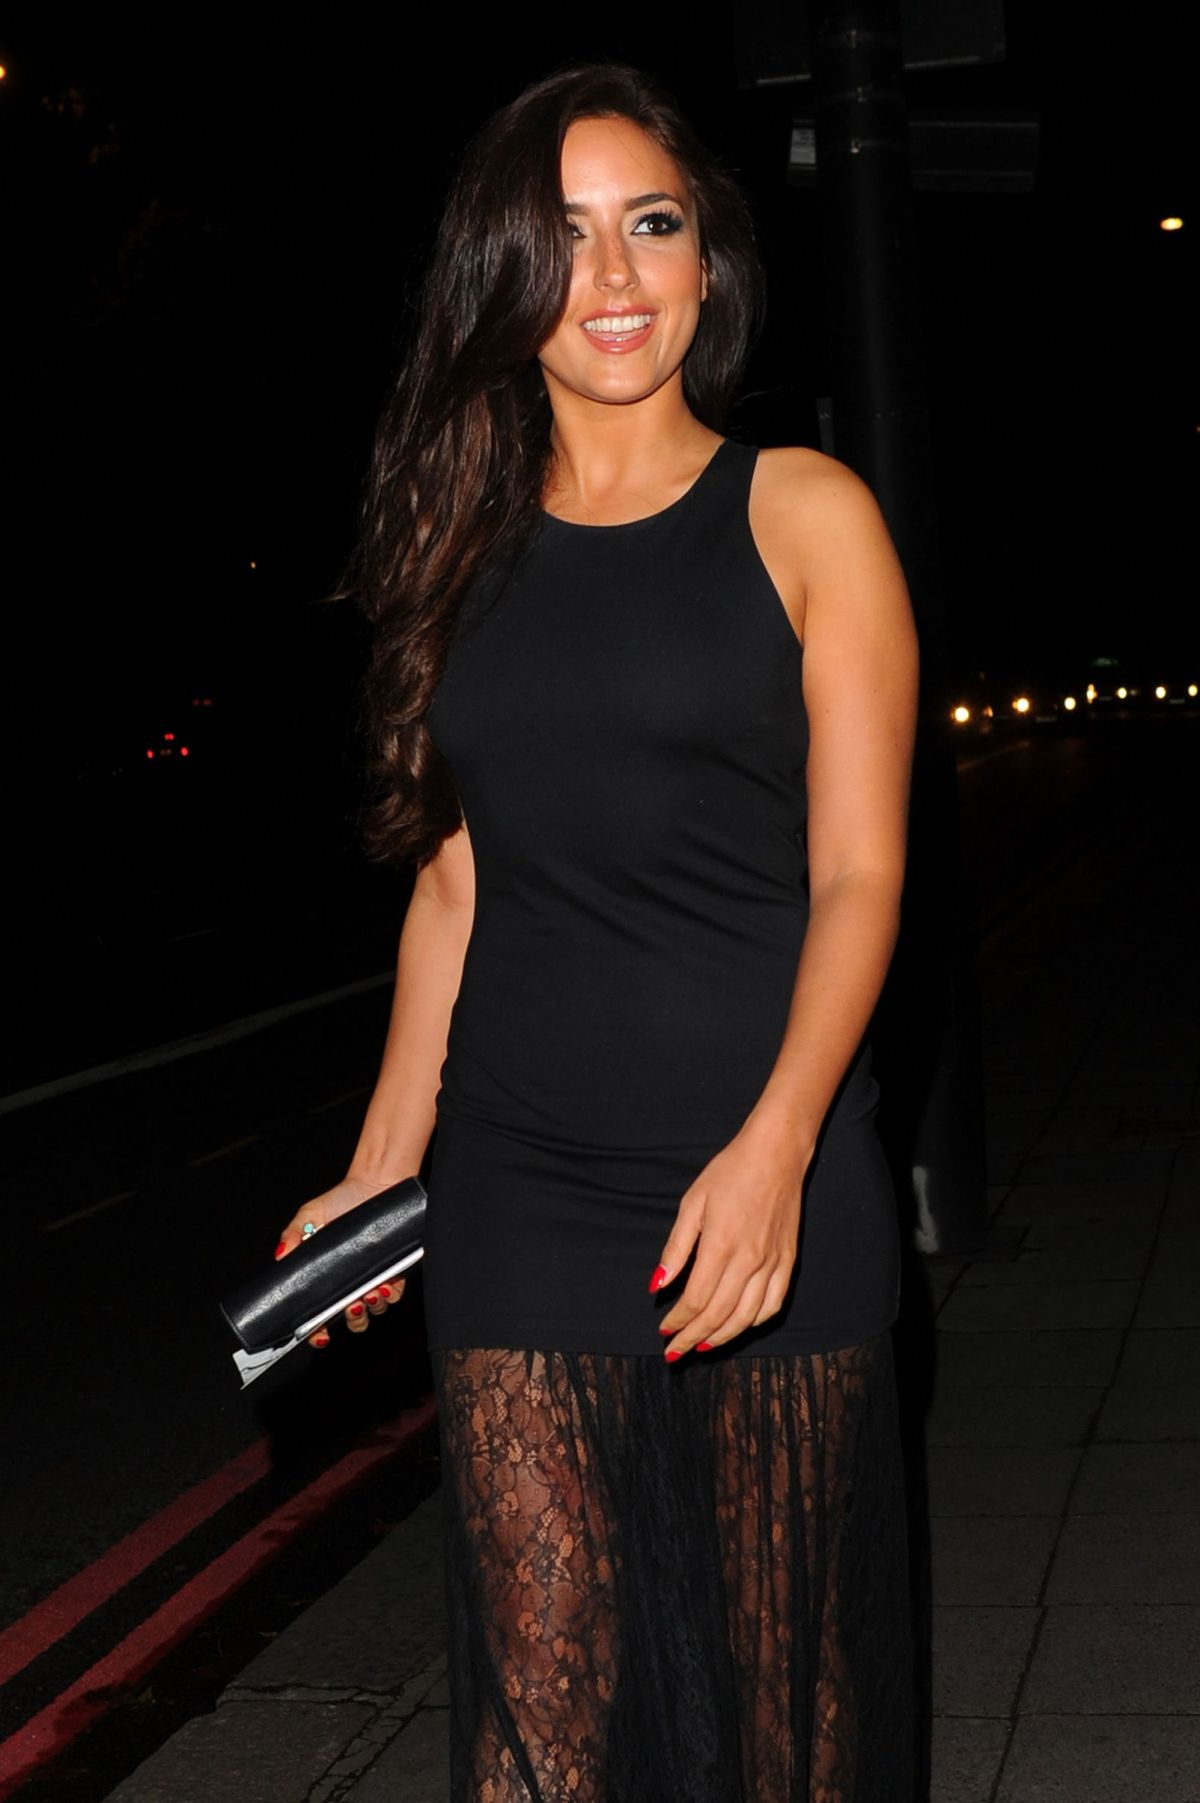 Nadia Forde At The Breast Cancer Care Fashion Show In